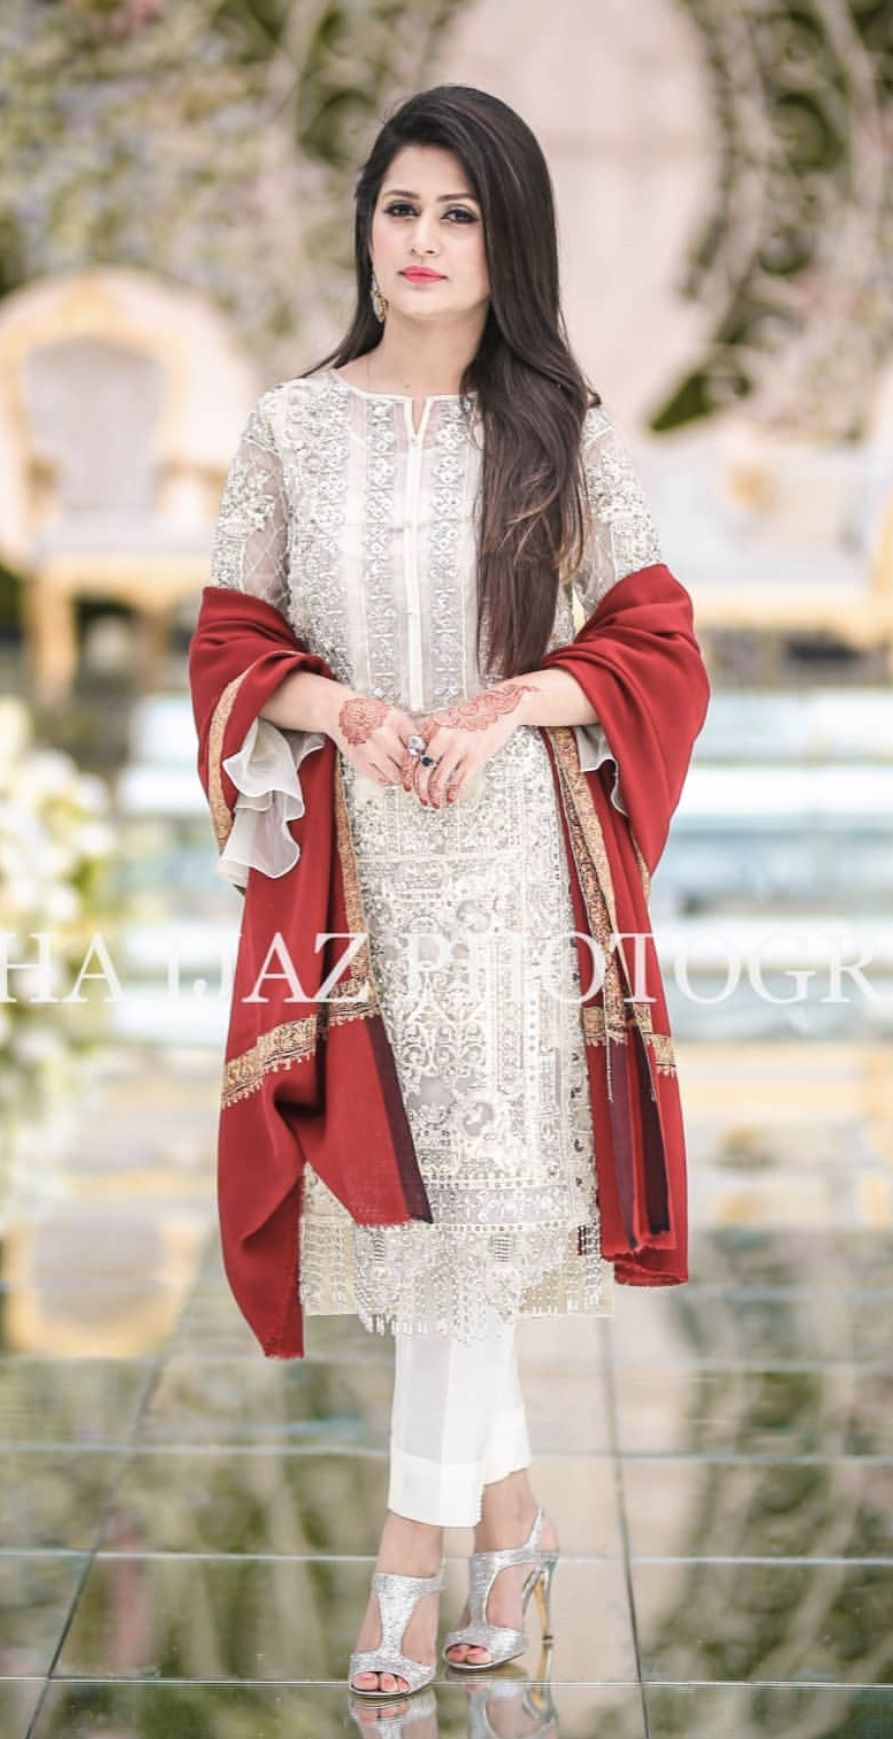 Guest On The Valima Pakistani Fancy Dresses Formal Wedding Guest Dress Stylish Dresses For Girls,New Wedding Dress Design 2020 In Pakistan For Girl